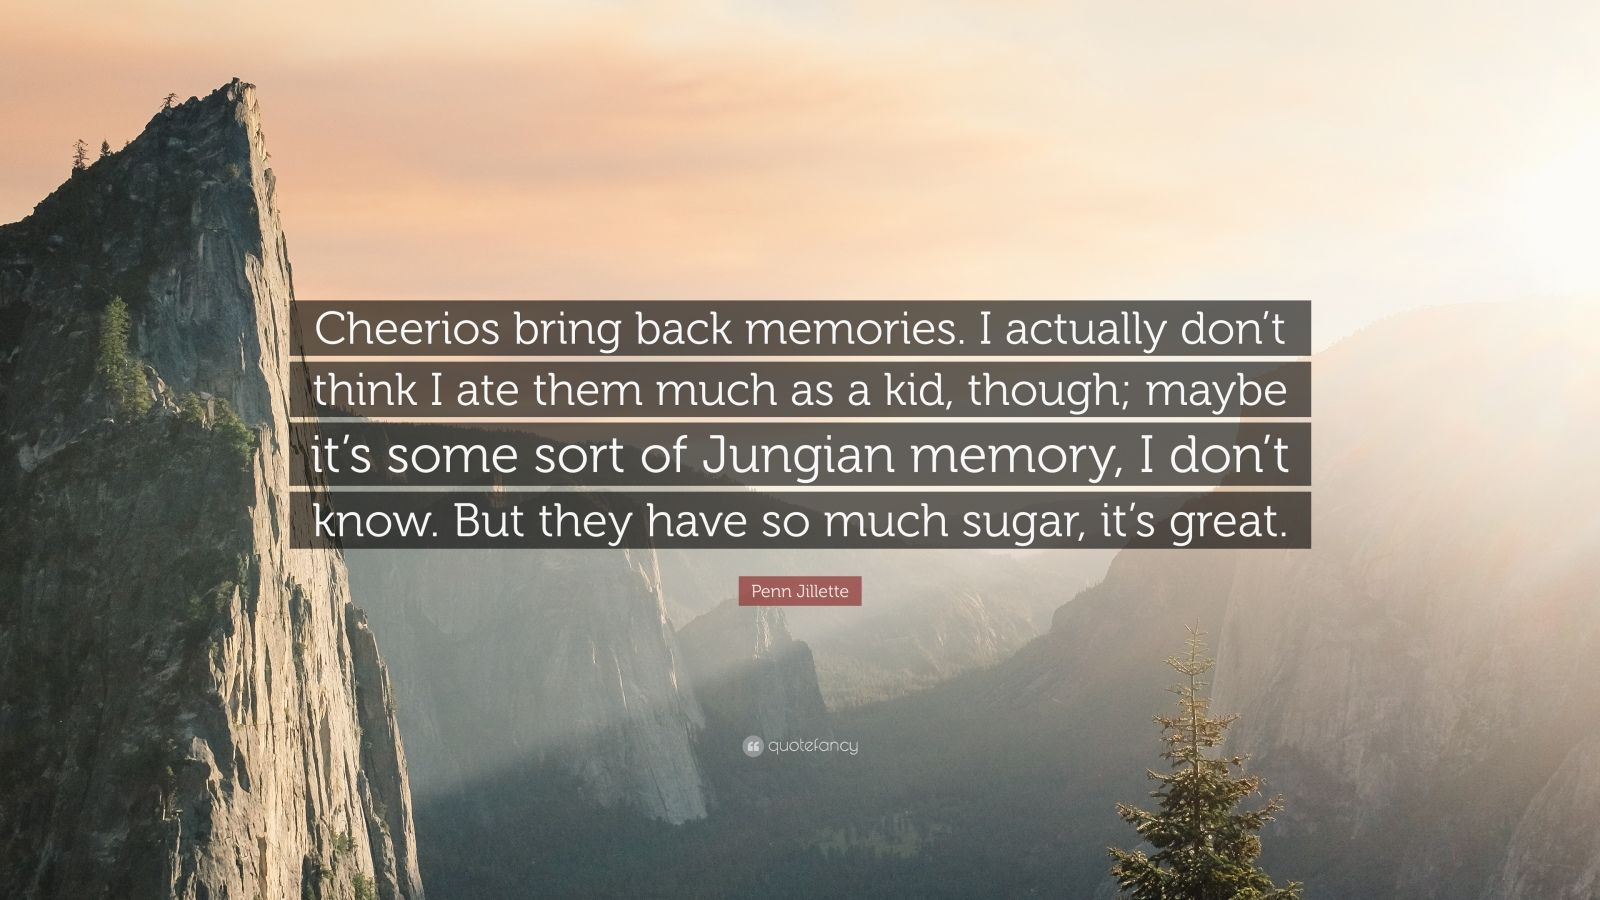 """Penn Jillette Quote: """"Cheerios bring back memories. I actually don't think I ate them much as a kid, though; maybe it's some sort of Jungian memory, I don't know. But they have so much sugar, it's great."""""""